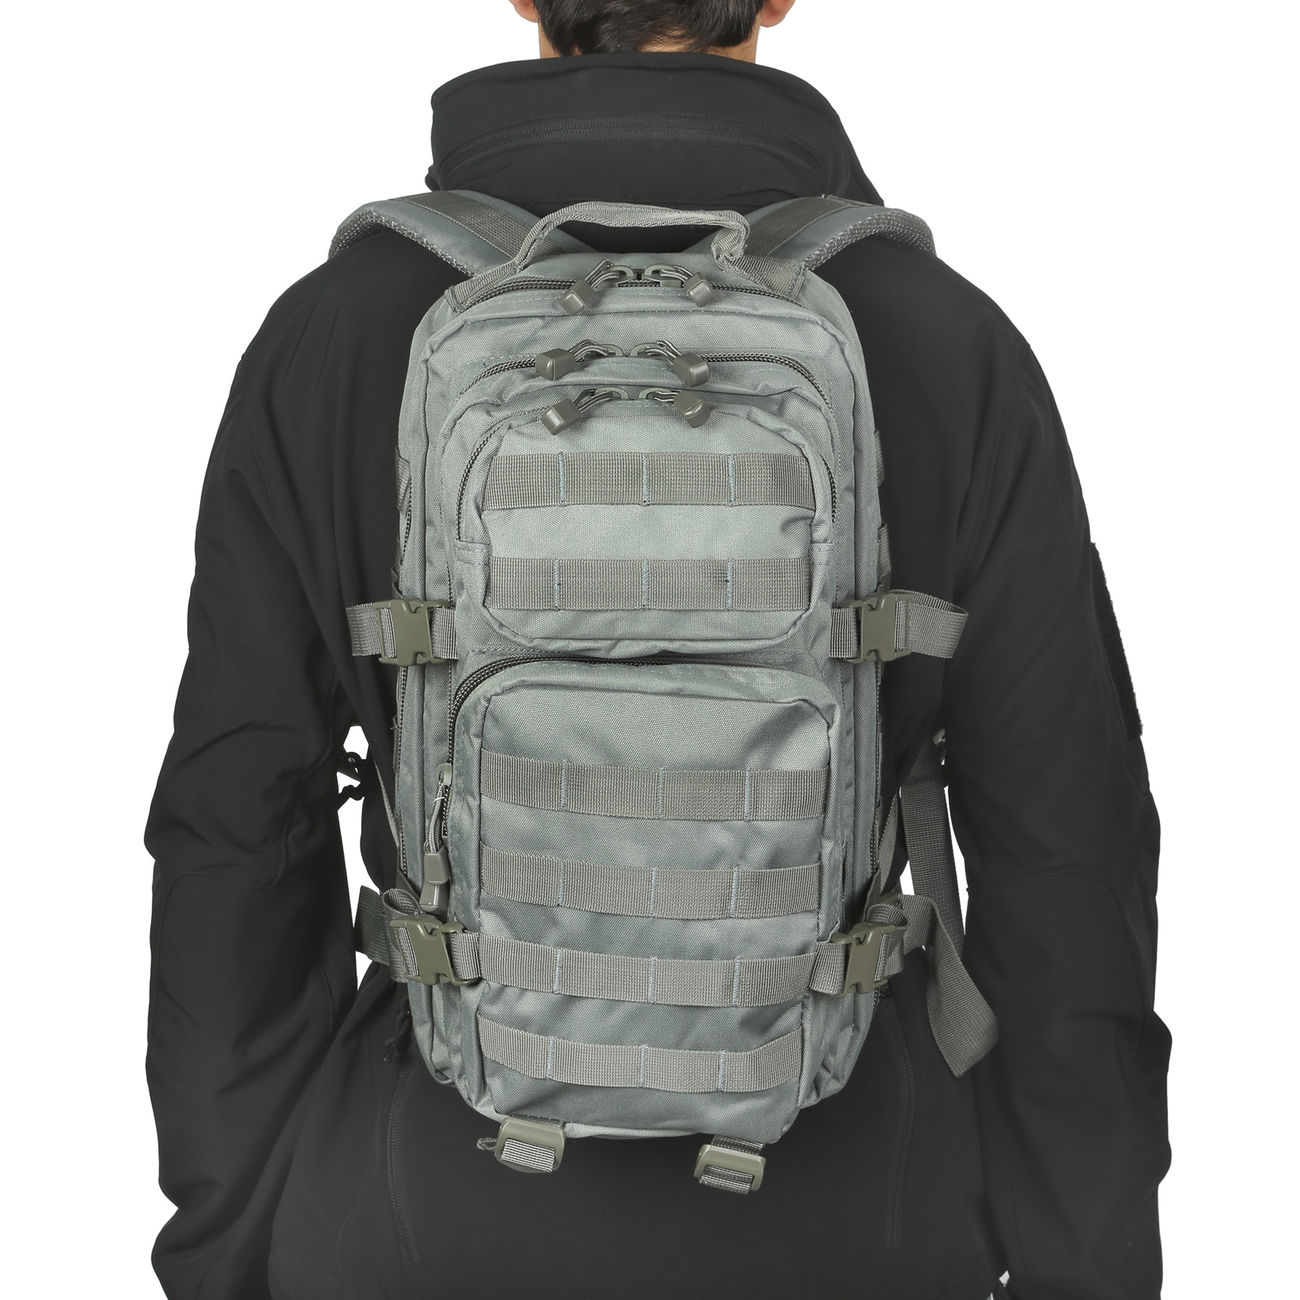 Mil-Tec Rucksack US Assault Pack I 20 Liter foliage 4